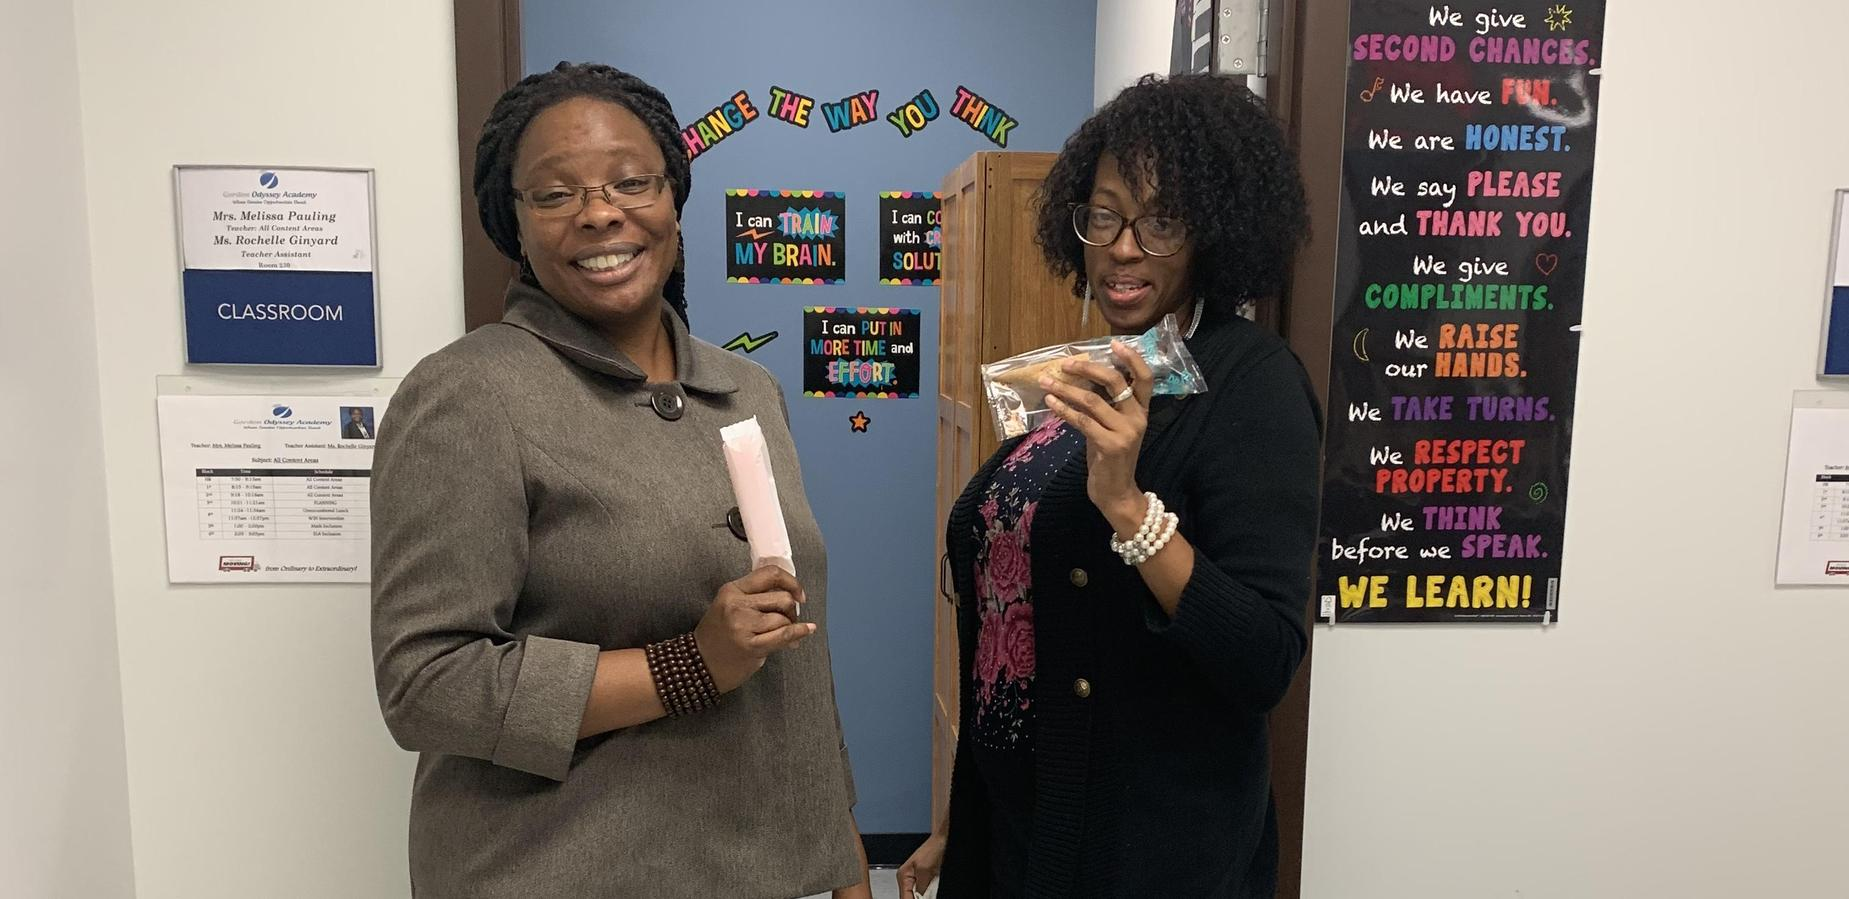 Mrs. Pauling and Ms. Ginyard enjoying a treat during American Education Week